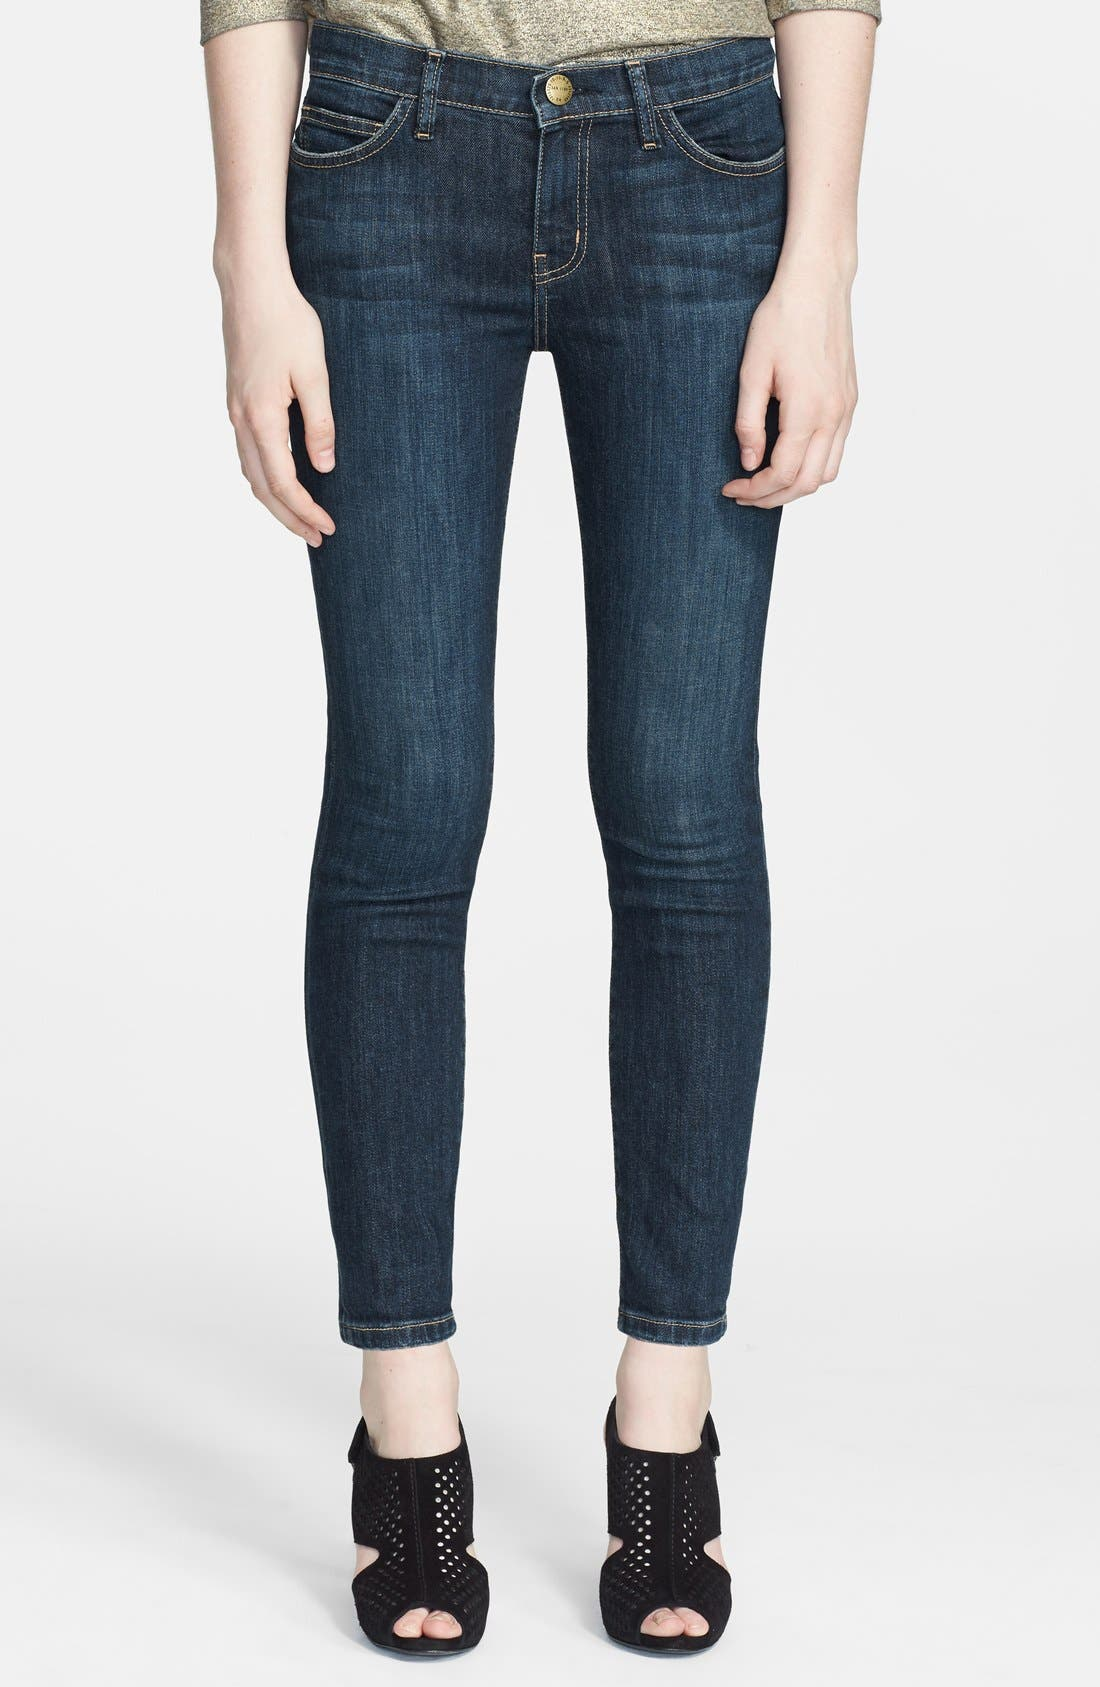 Main Image - Current/Elliott 'The Stiletto' Skinny Jeans (Alumni)